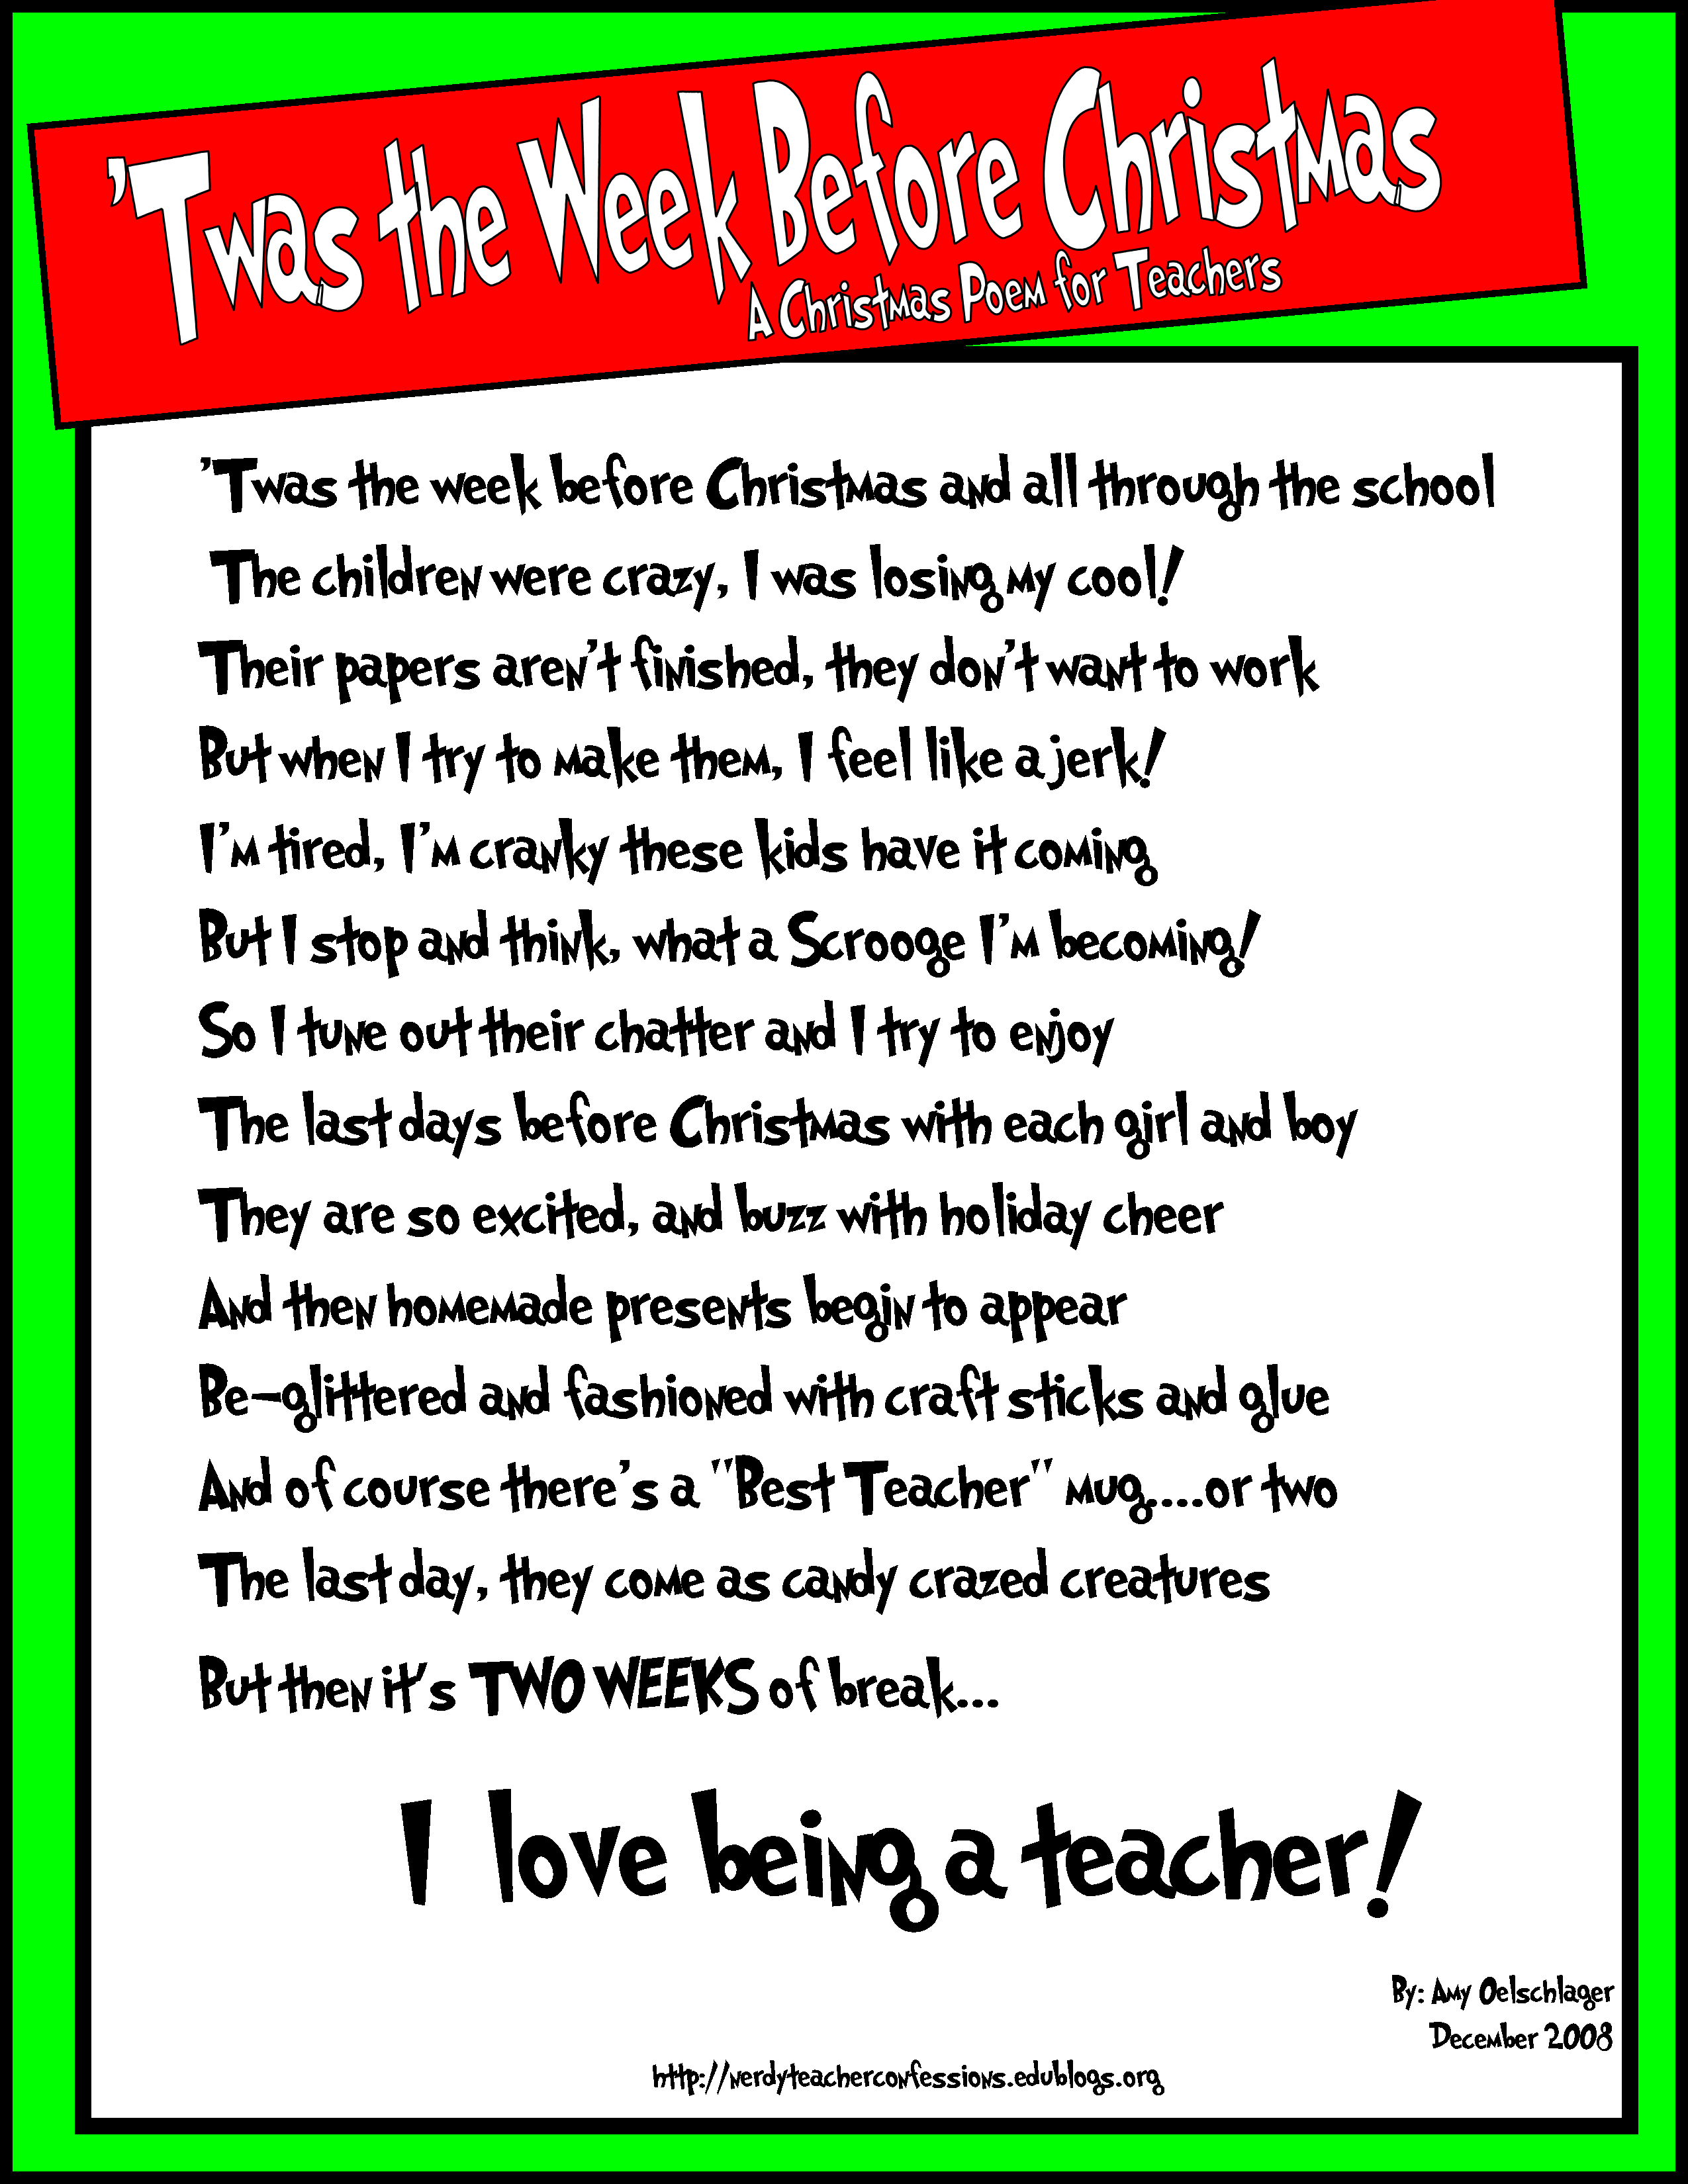 funny poems about school teachers school through the 23rd whew merry christmas to all you teachers